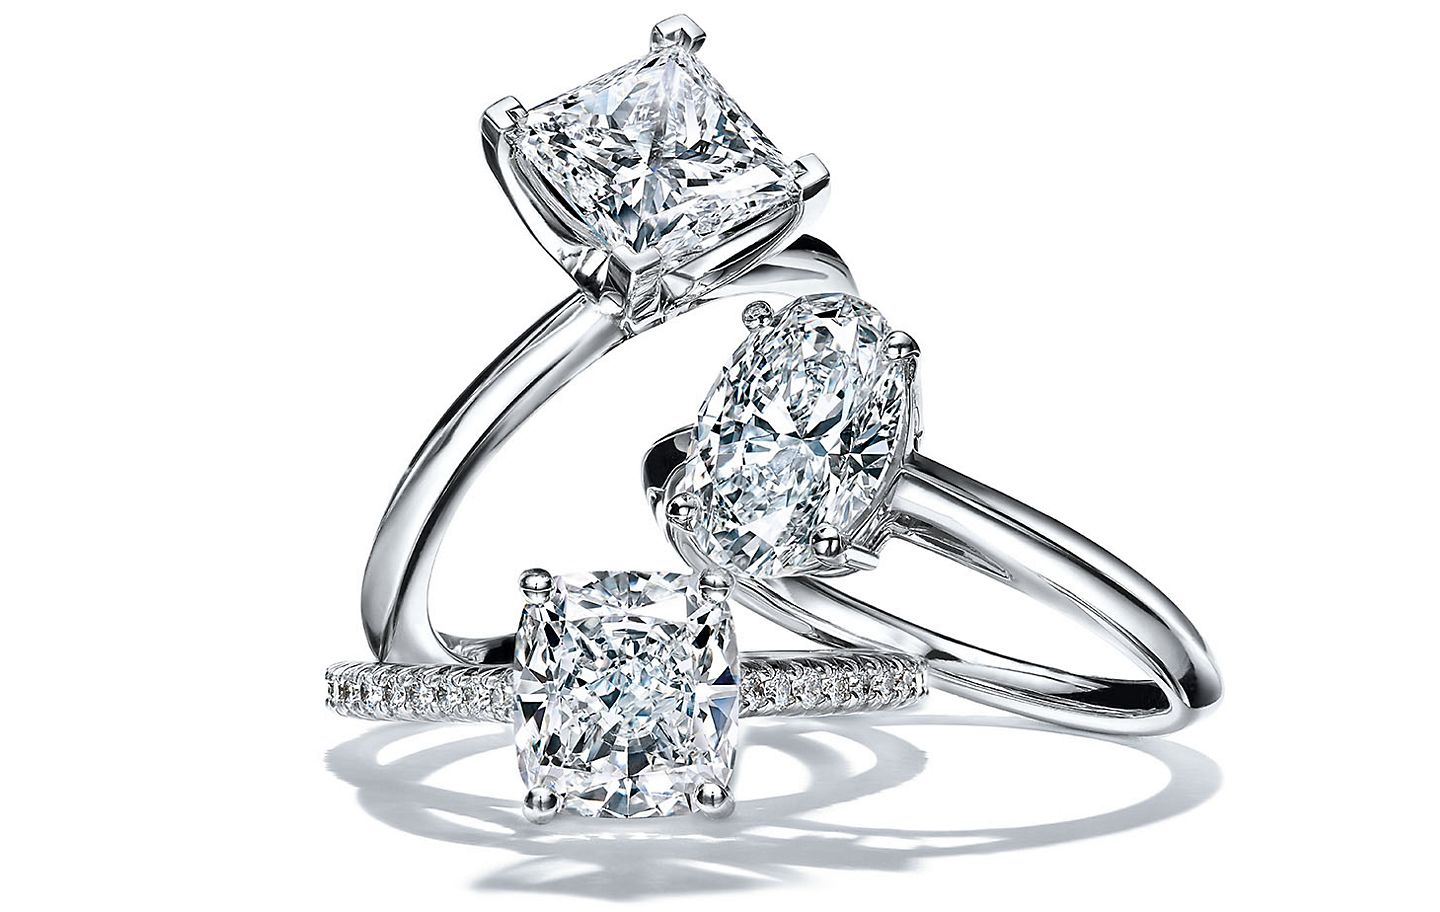 Tiffany & Co. Solitaire Engagement Rings